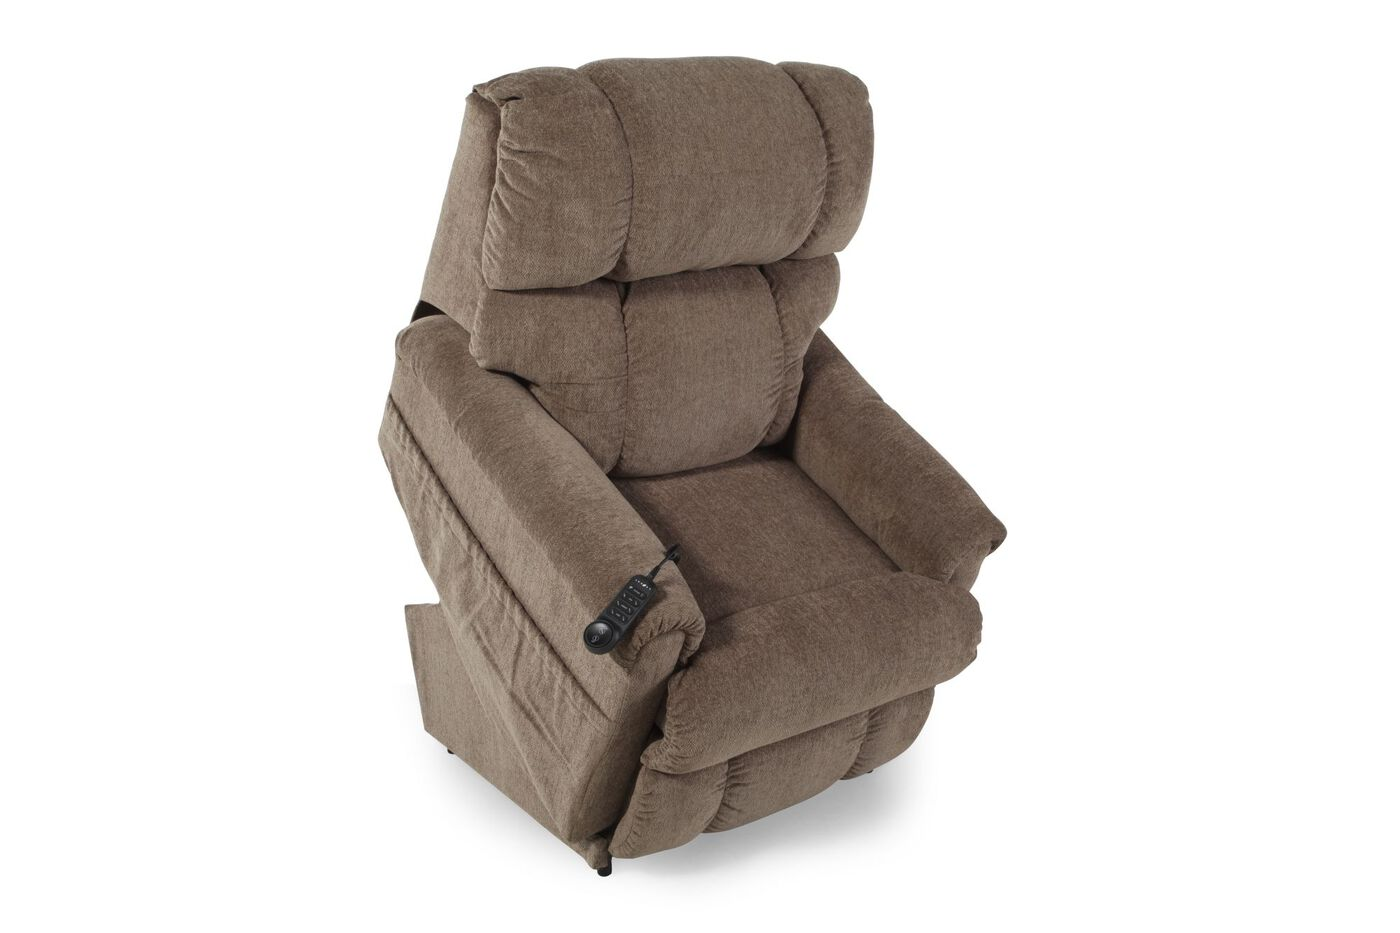 For those that need mobility assistance, La-Z-Boy power lift recliners are the perfect choice. At the touch of a button, our power lift chairs let you comfortably relax and recline, then securely assist you from a sitting to standing position.